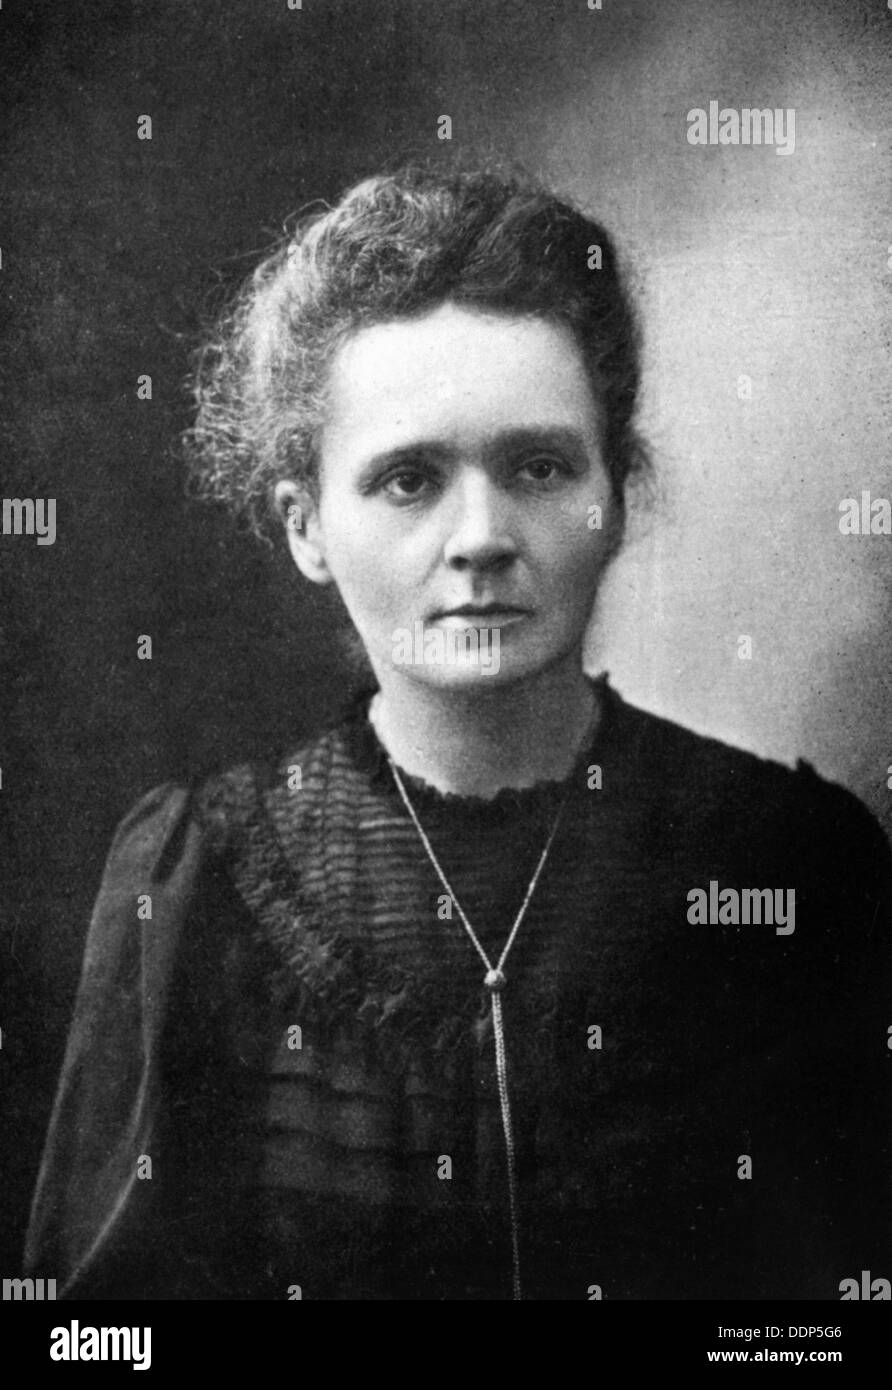 Marie Curie - French physicist - 1917 - Stock Image